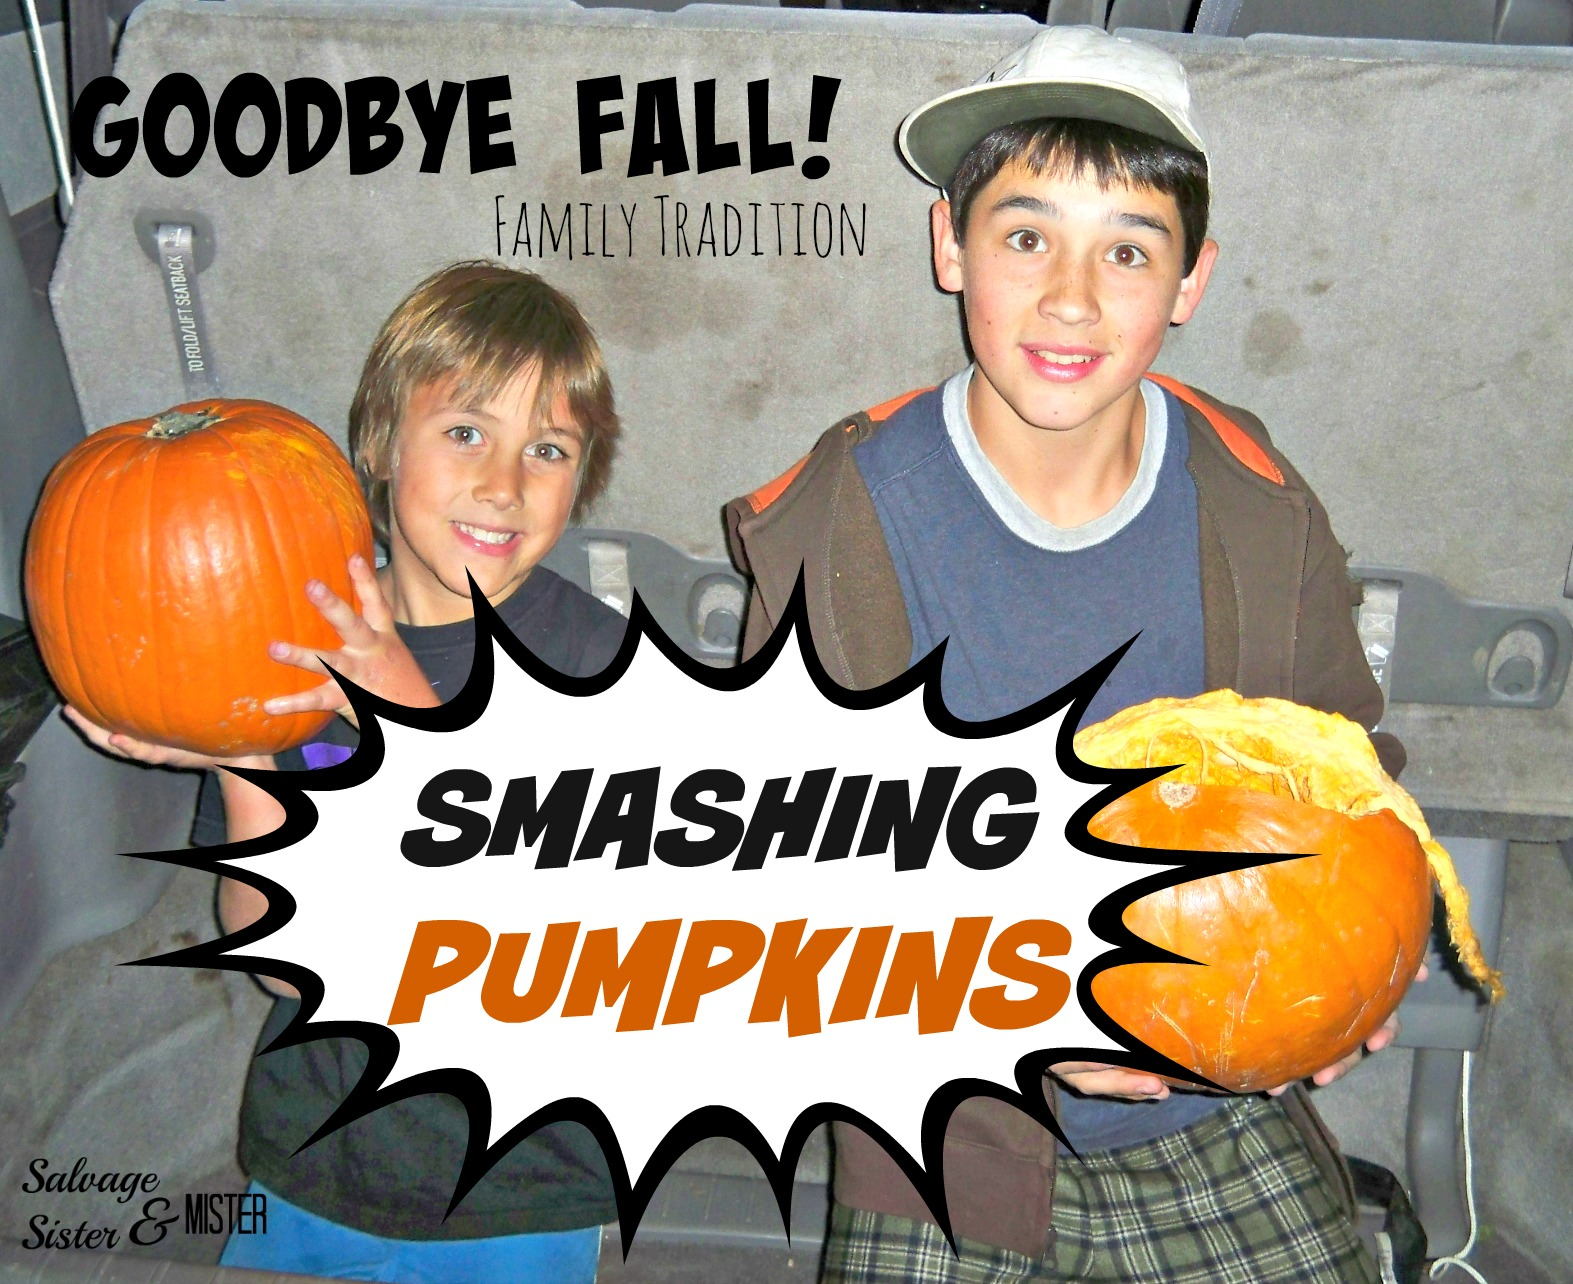 Smashing Pumpkins. Goodbye Fall, Hello Christmas with this family tradition....SMASHING PUMPKINS. Great family activity. Ring in the new holiday season. Kids